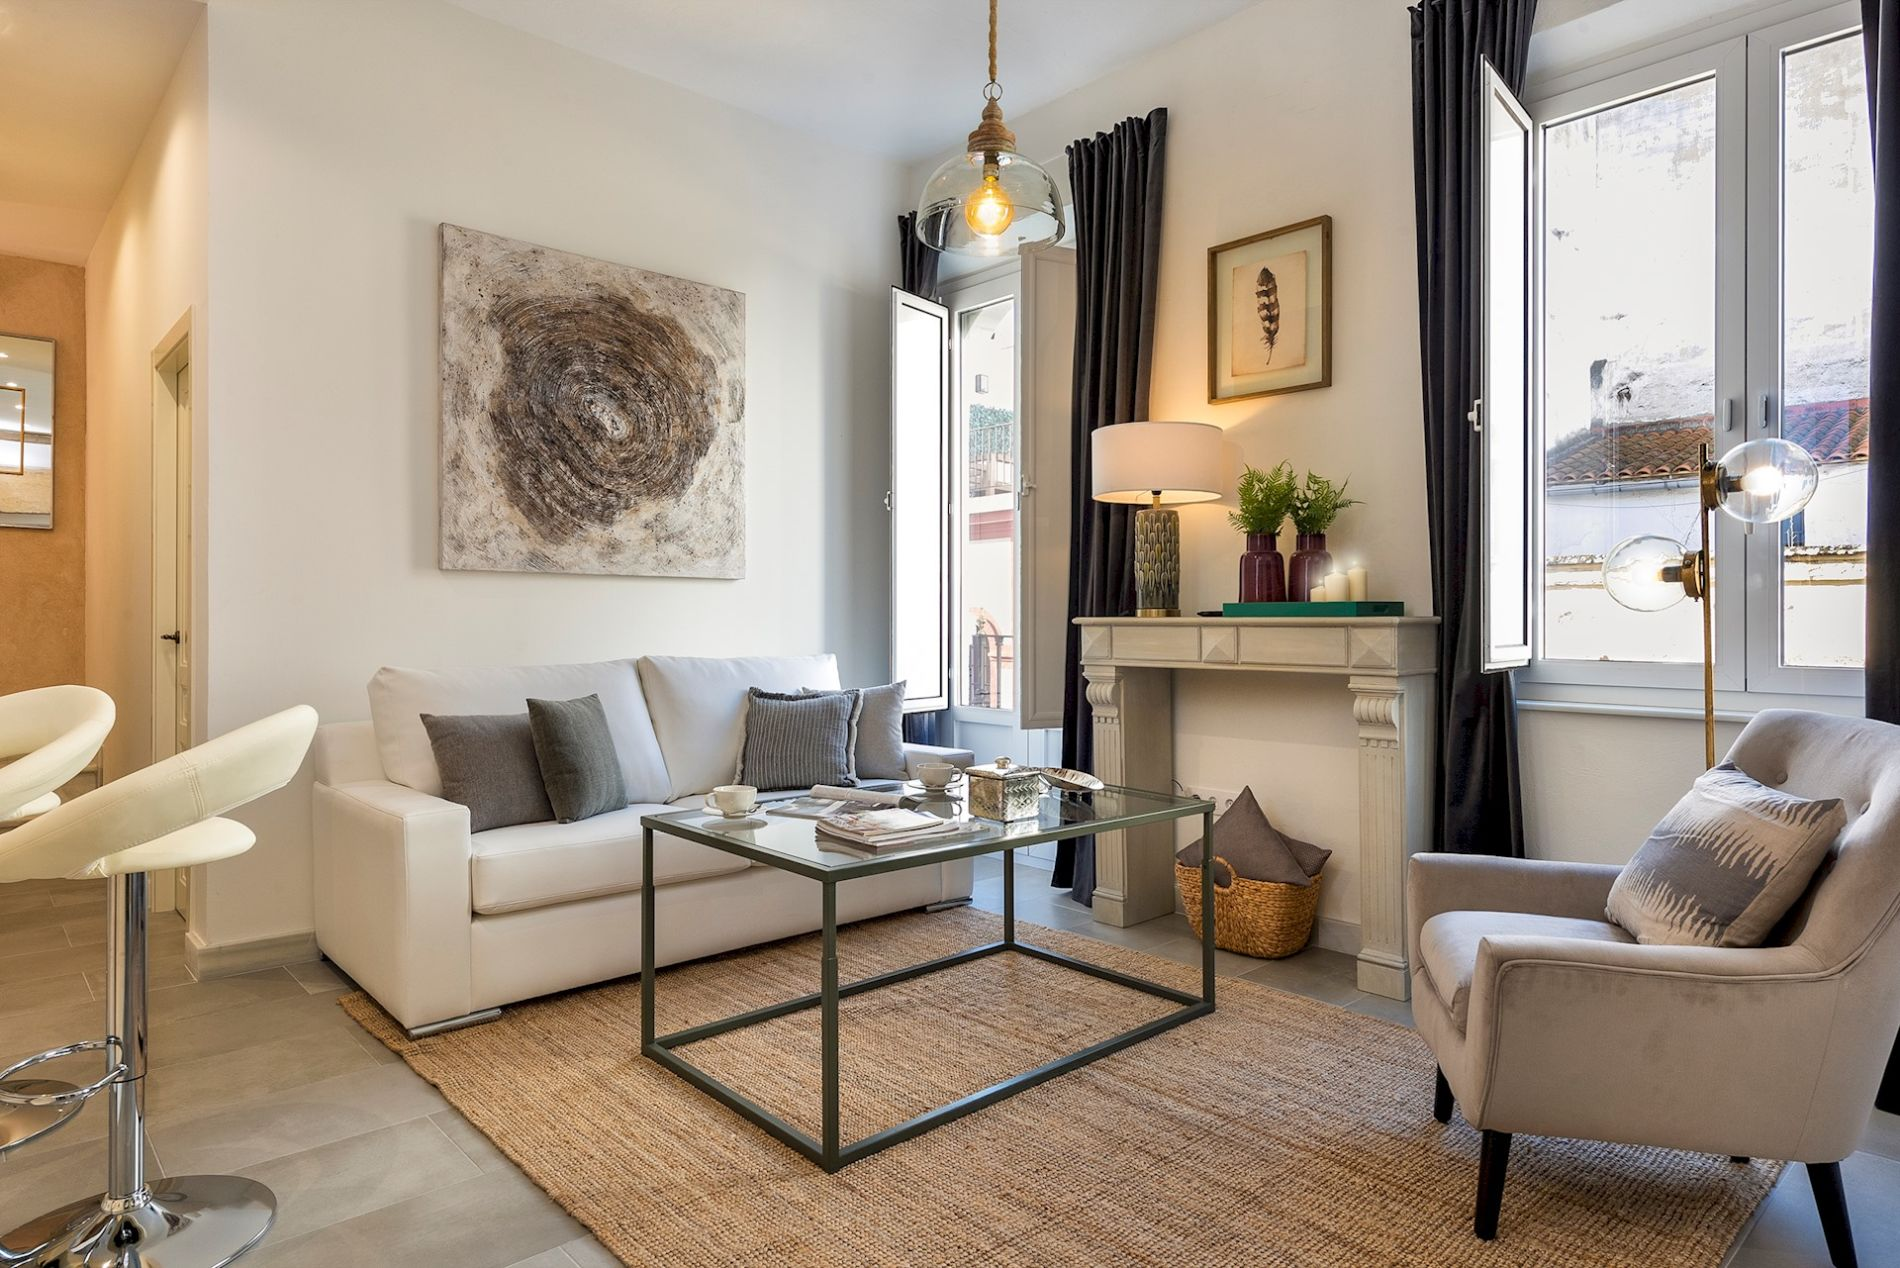 Brand new 3 bed apartment in Seville that accepts pets